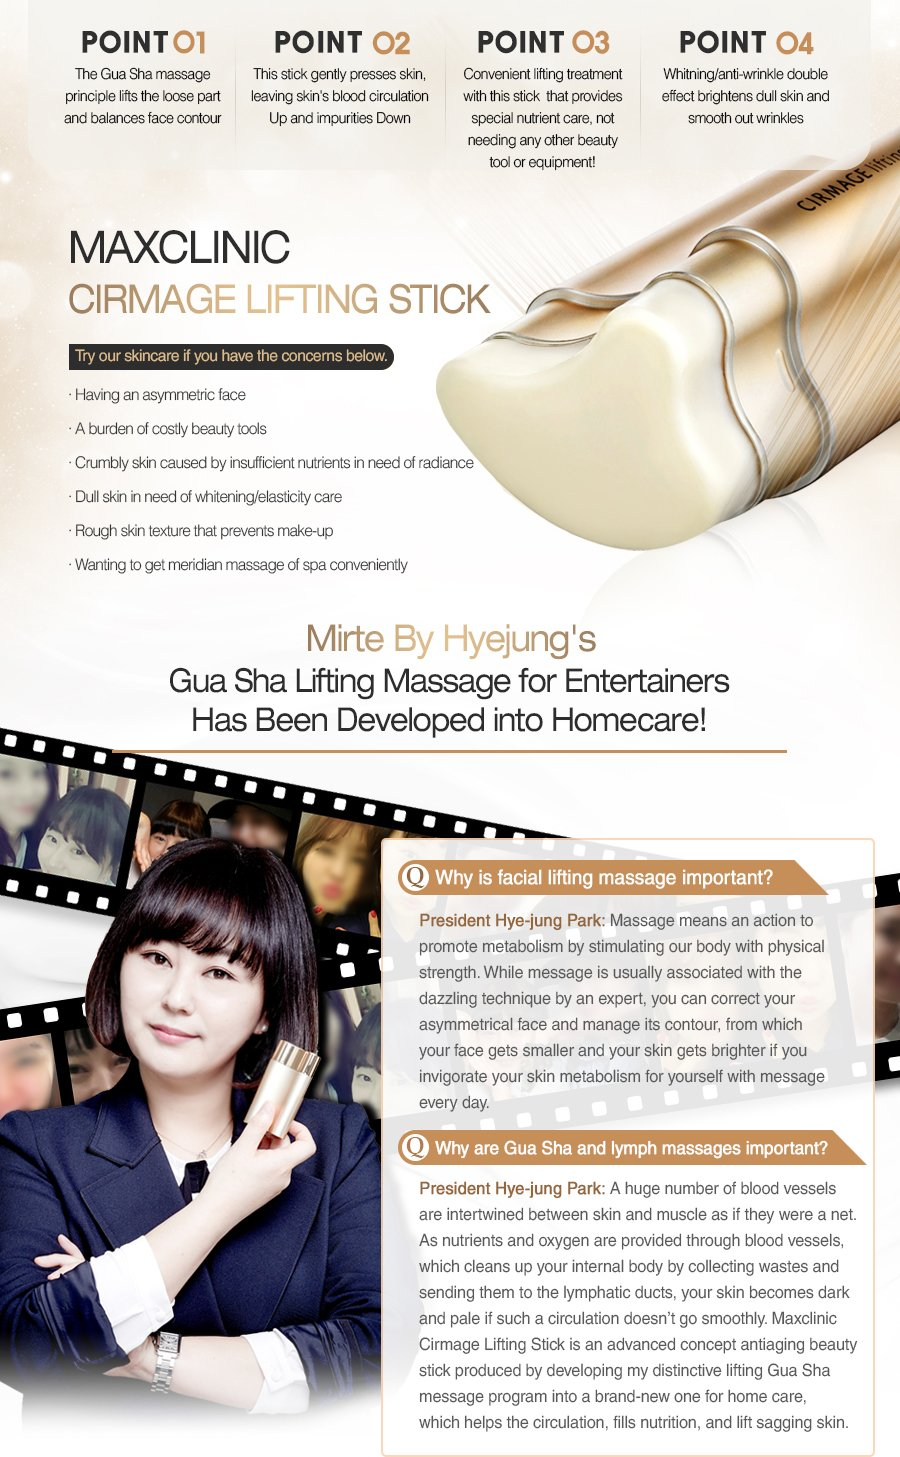 Maxclinic Cirmage Lifting Stick